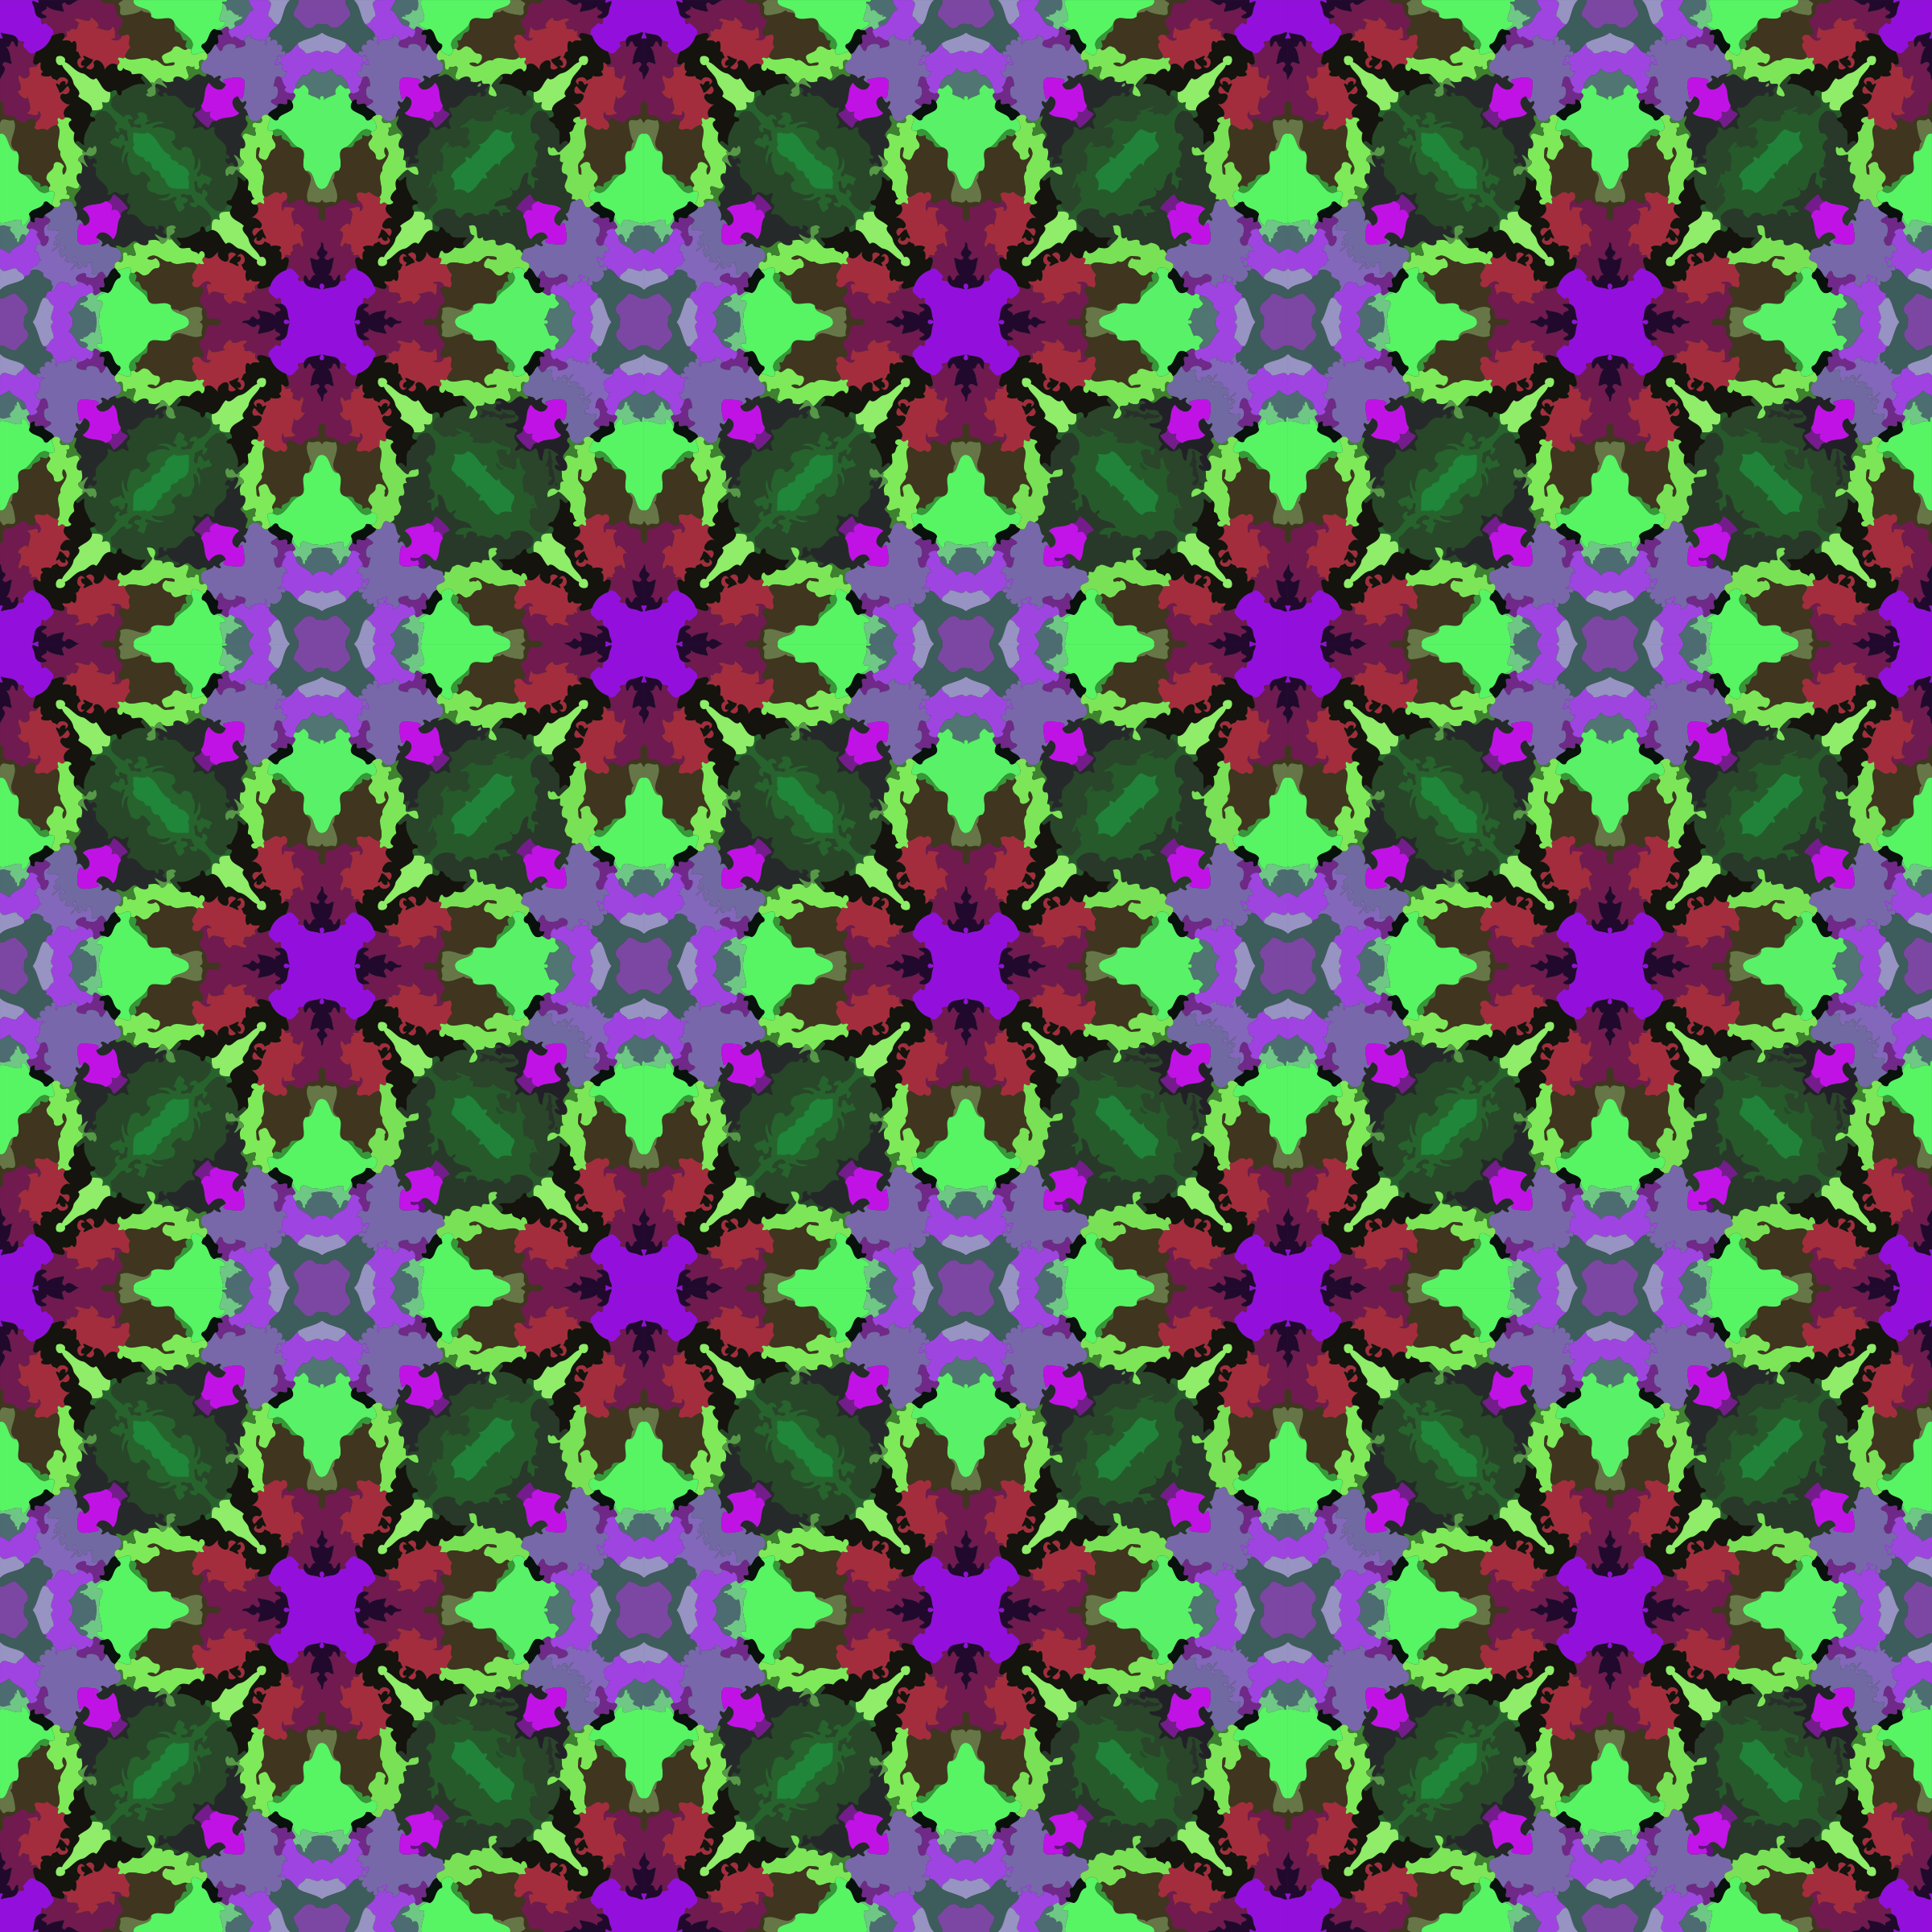 Background pattern 224 (colour 6) by Firkin